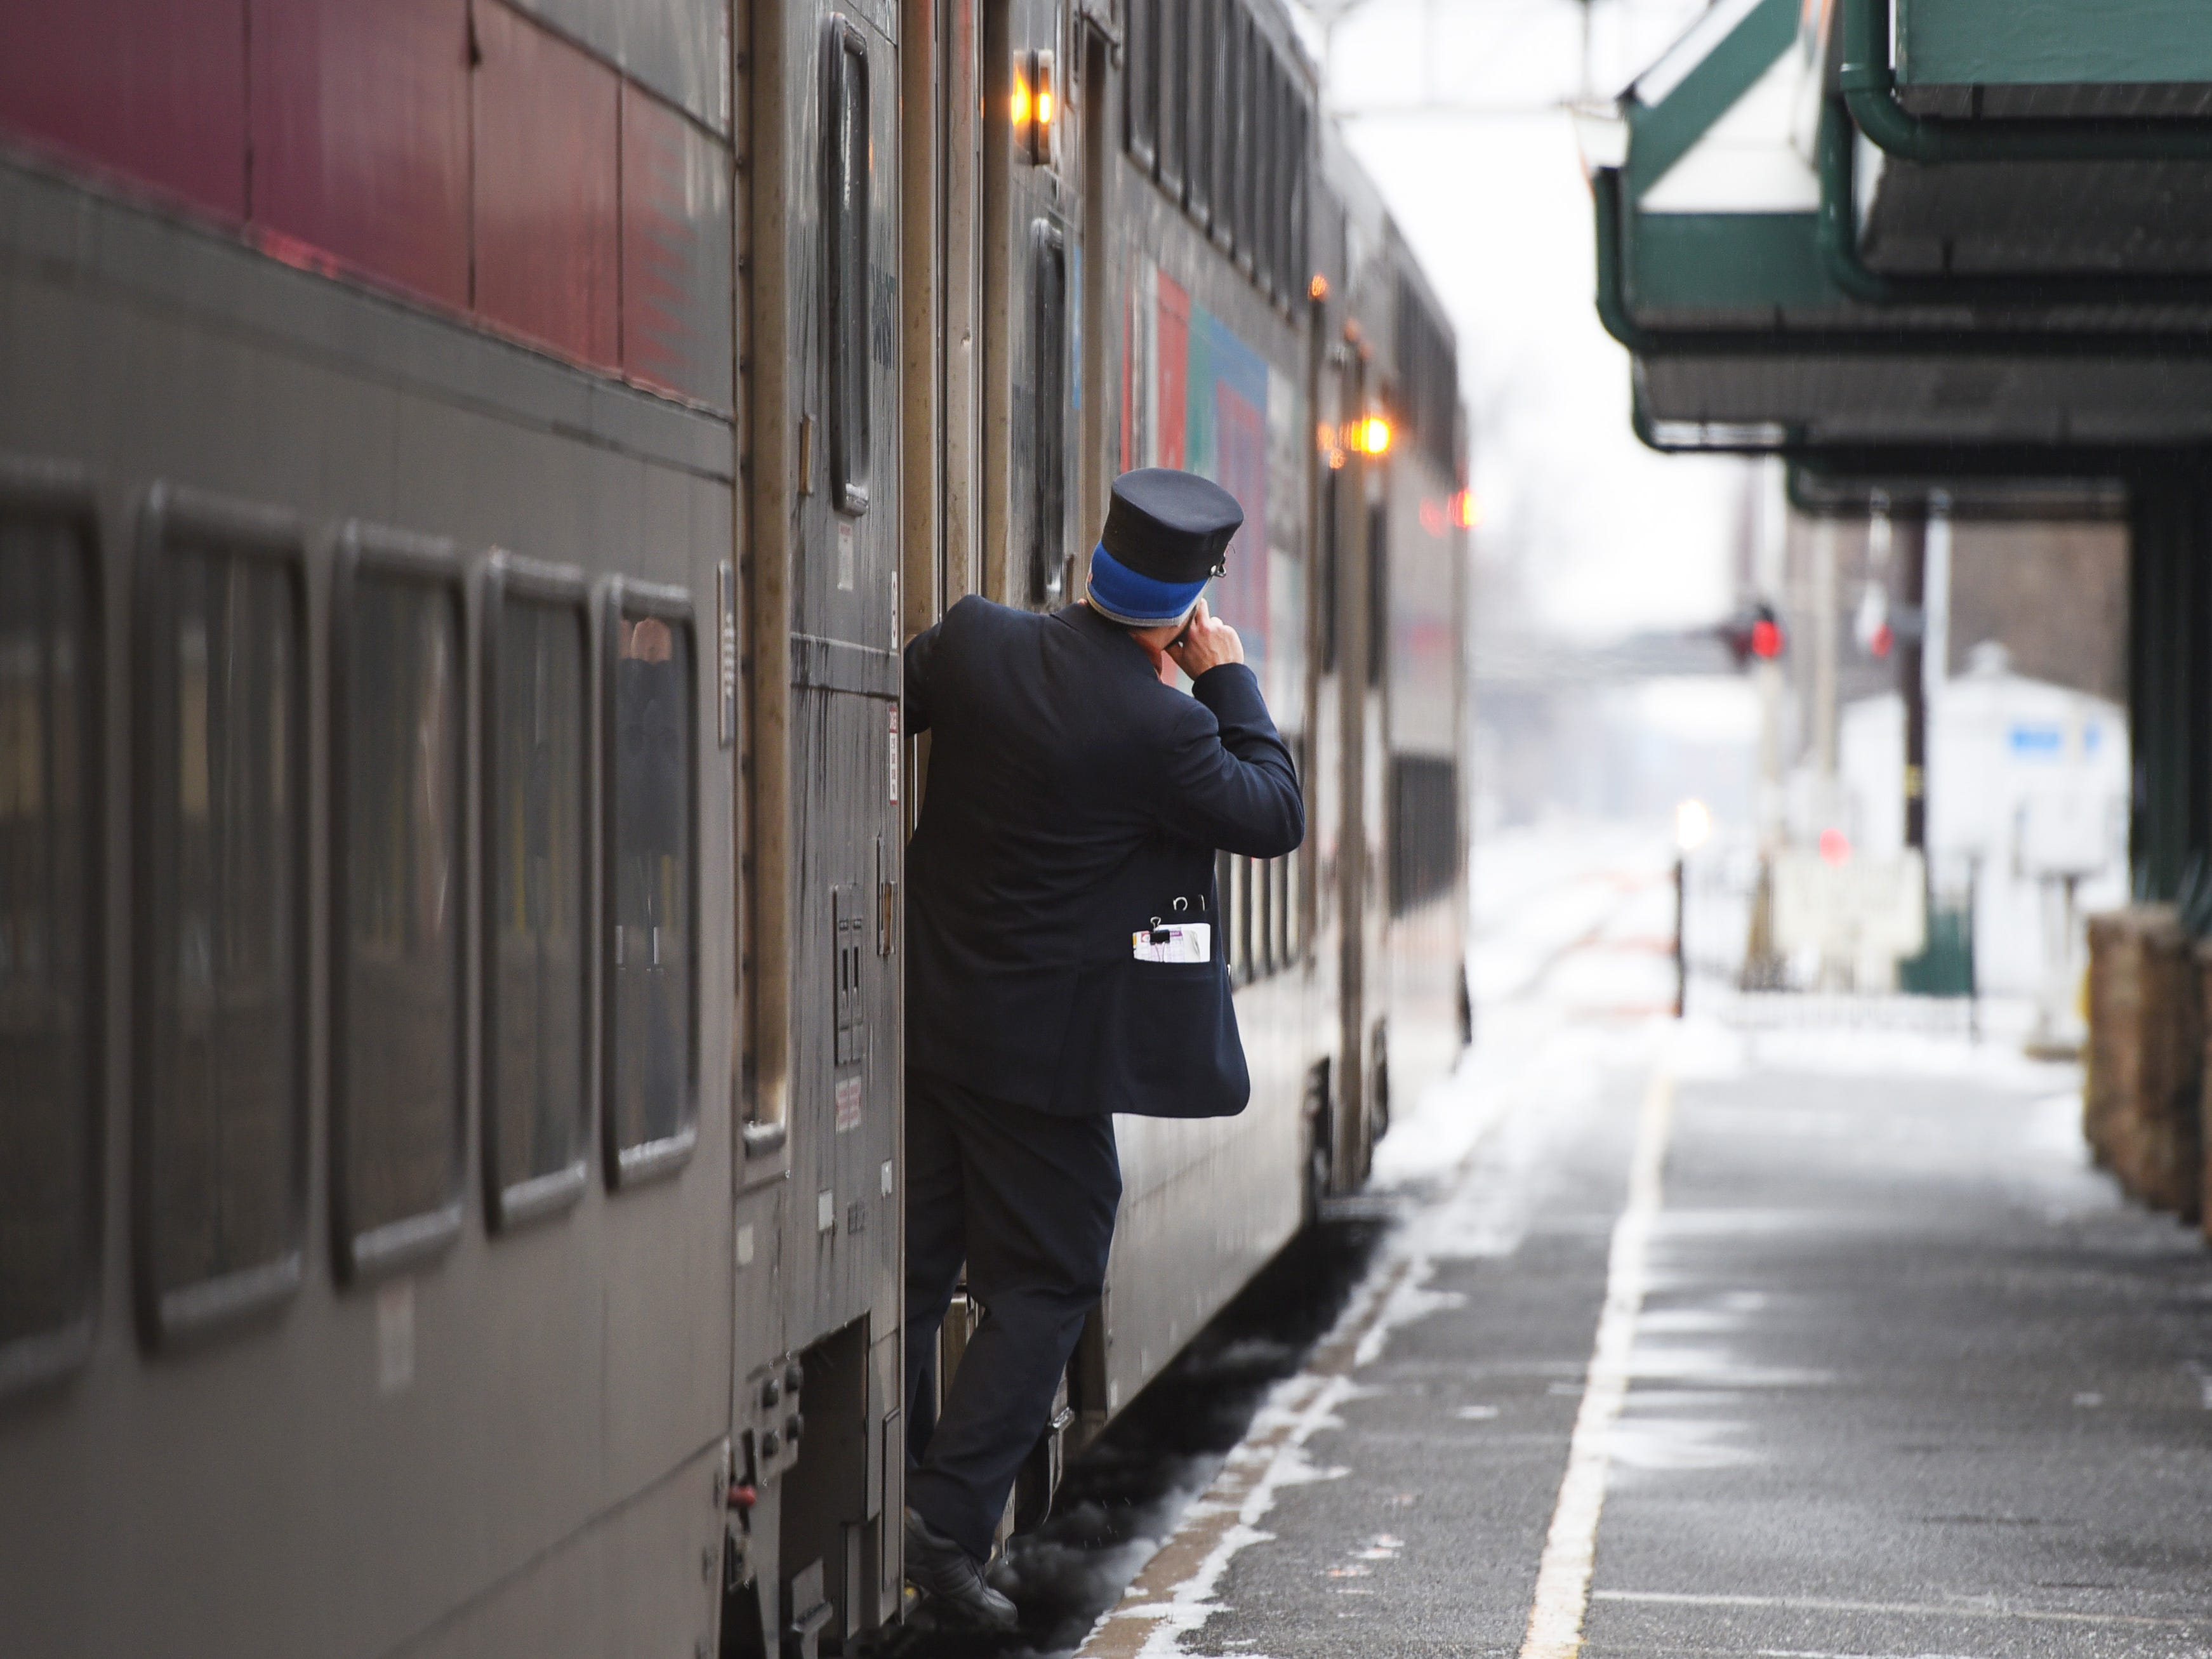 A conductor checks prior to boarding at Radburn Station on Sunday morning in Fair Lawn, NJ on 01/20/19.